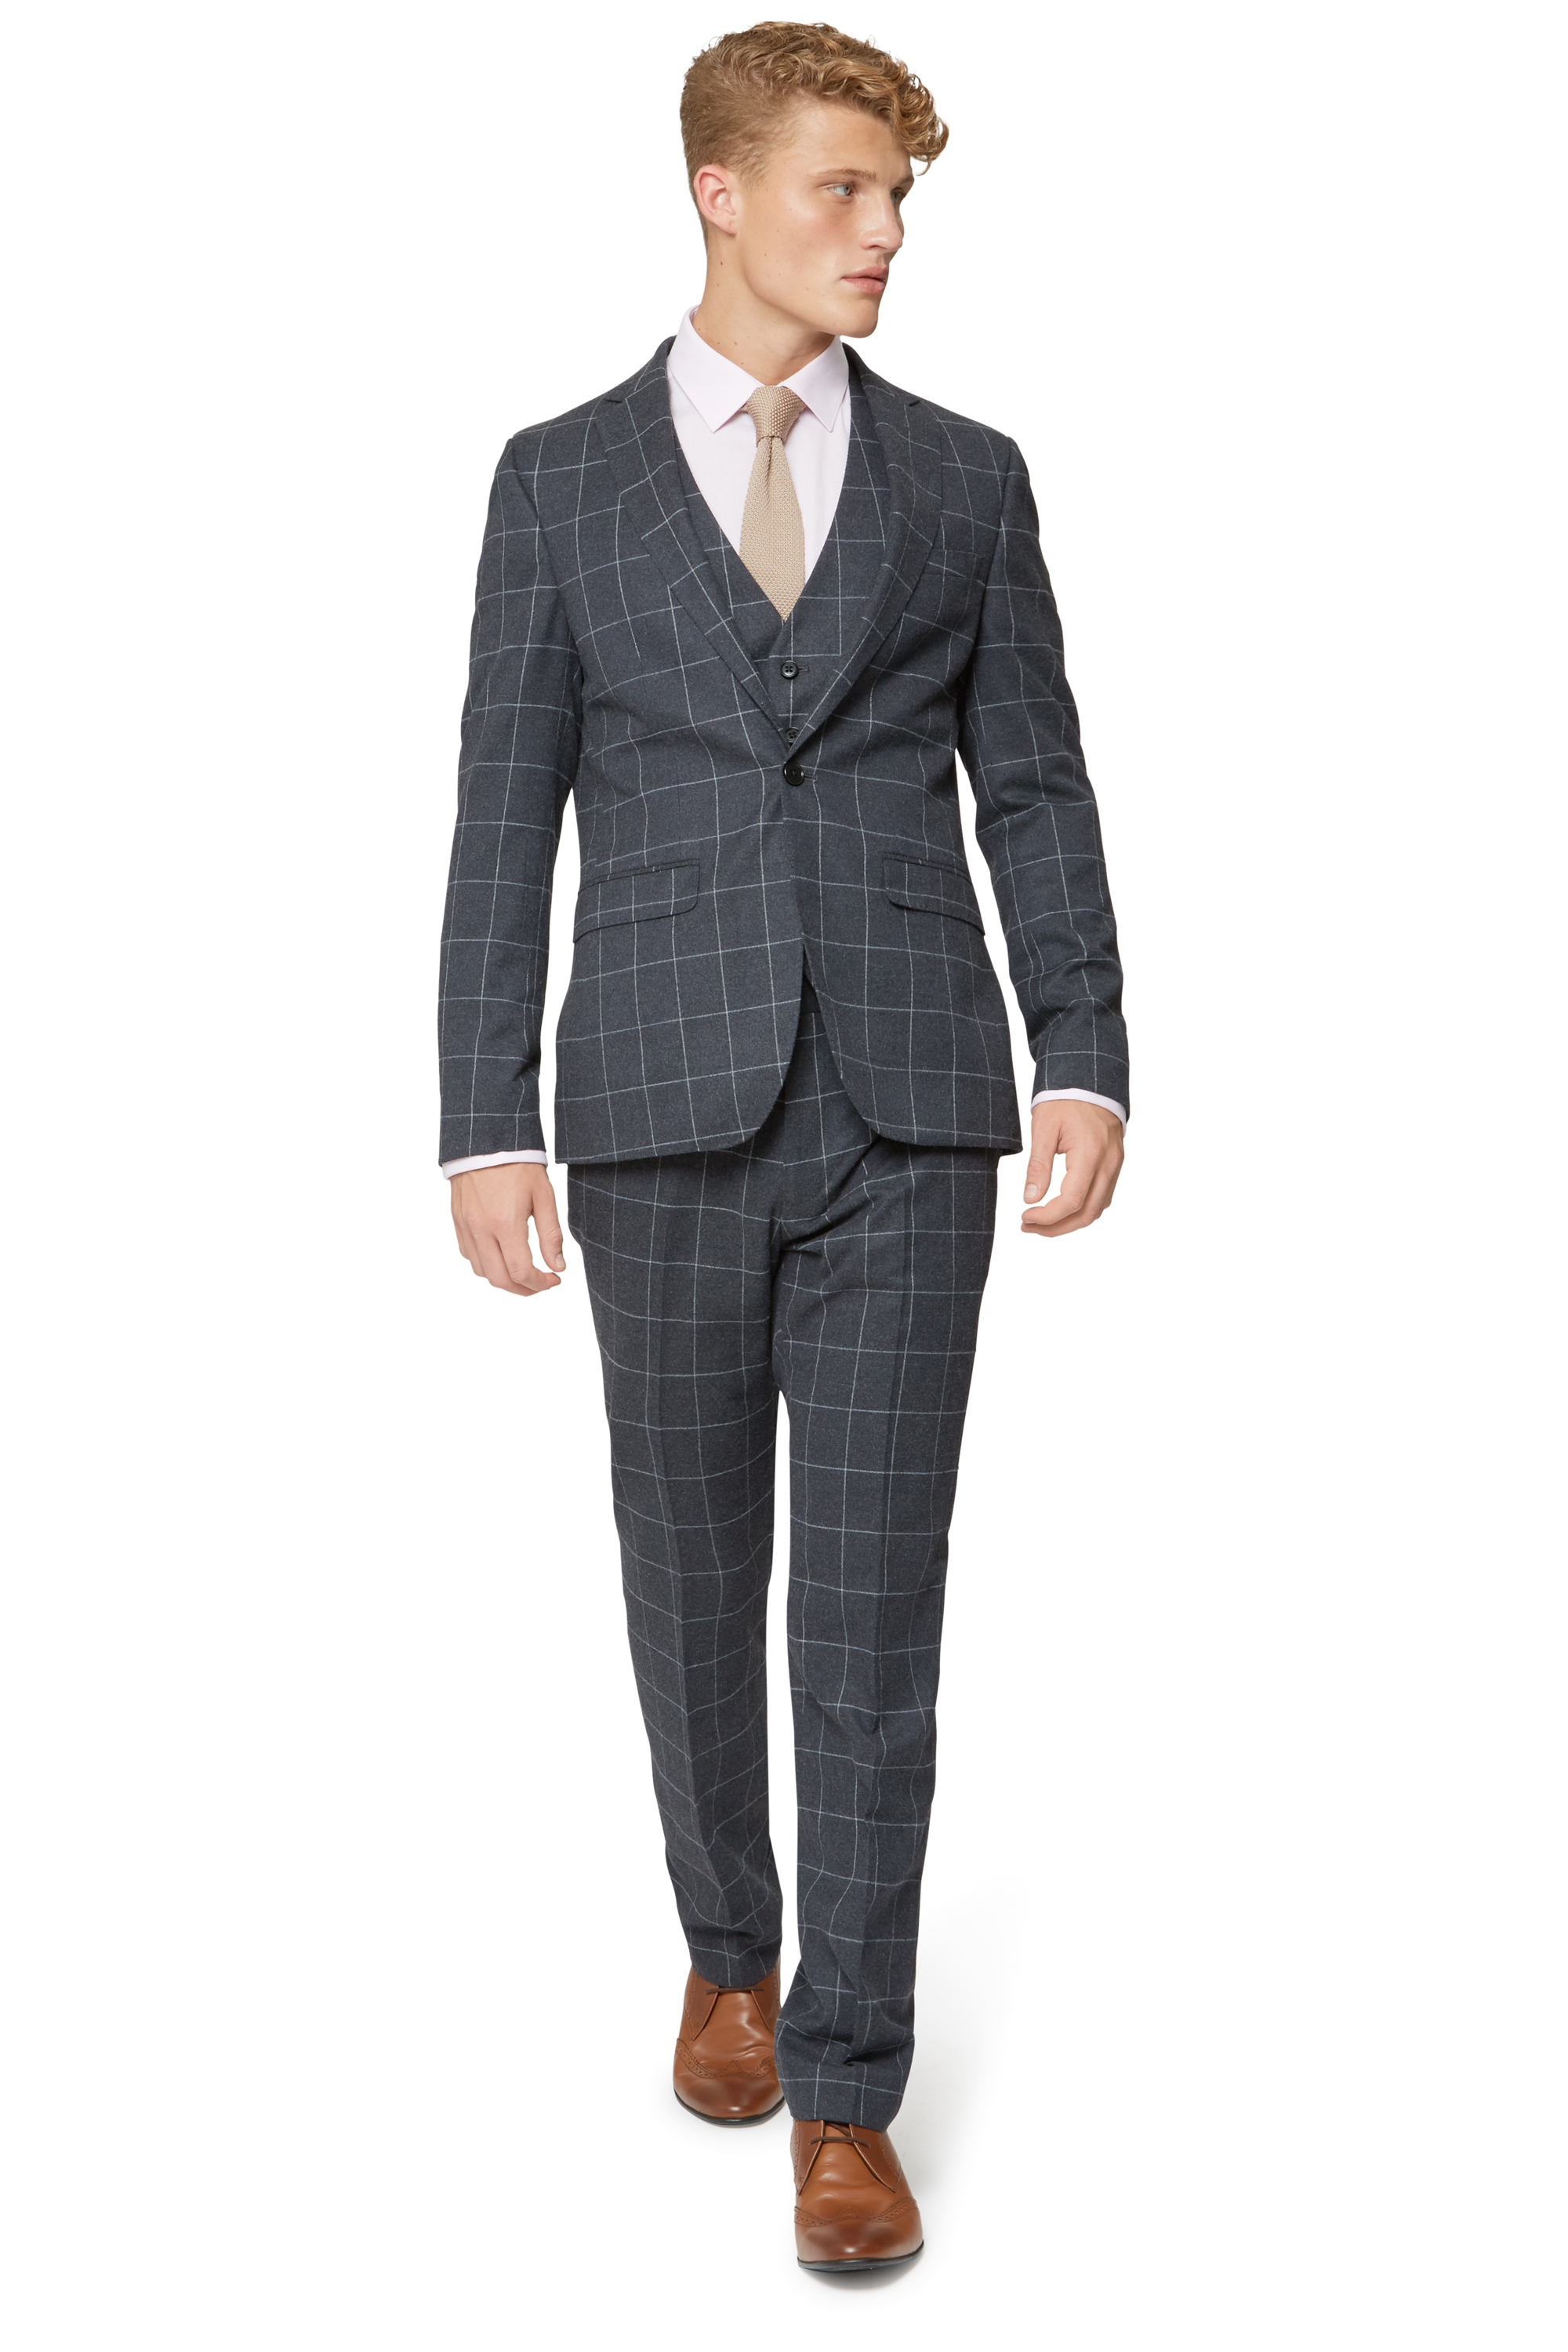 Moss London Mens Skinny Fit Charcoal Windowpane 3 Piece Suit | eBay